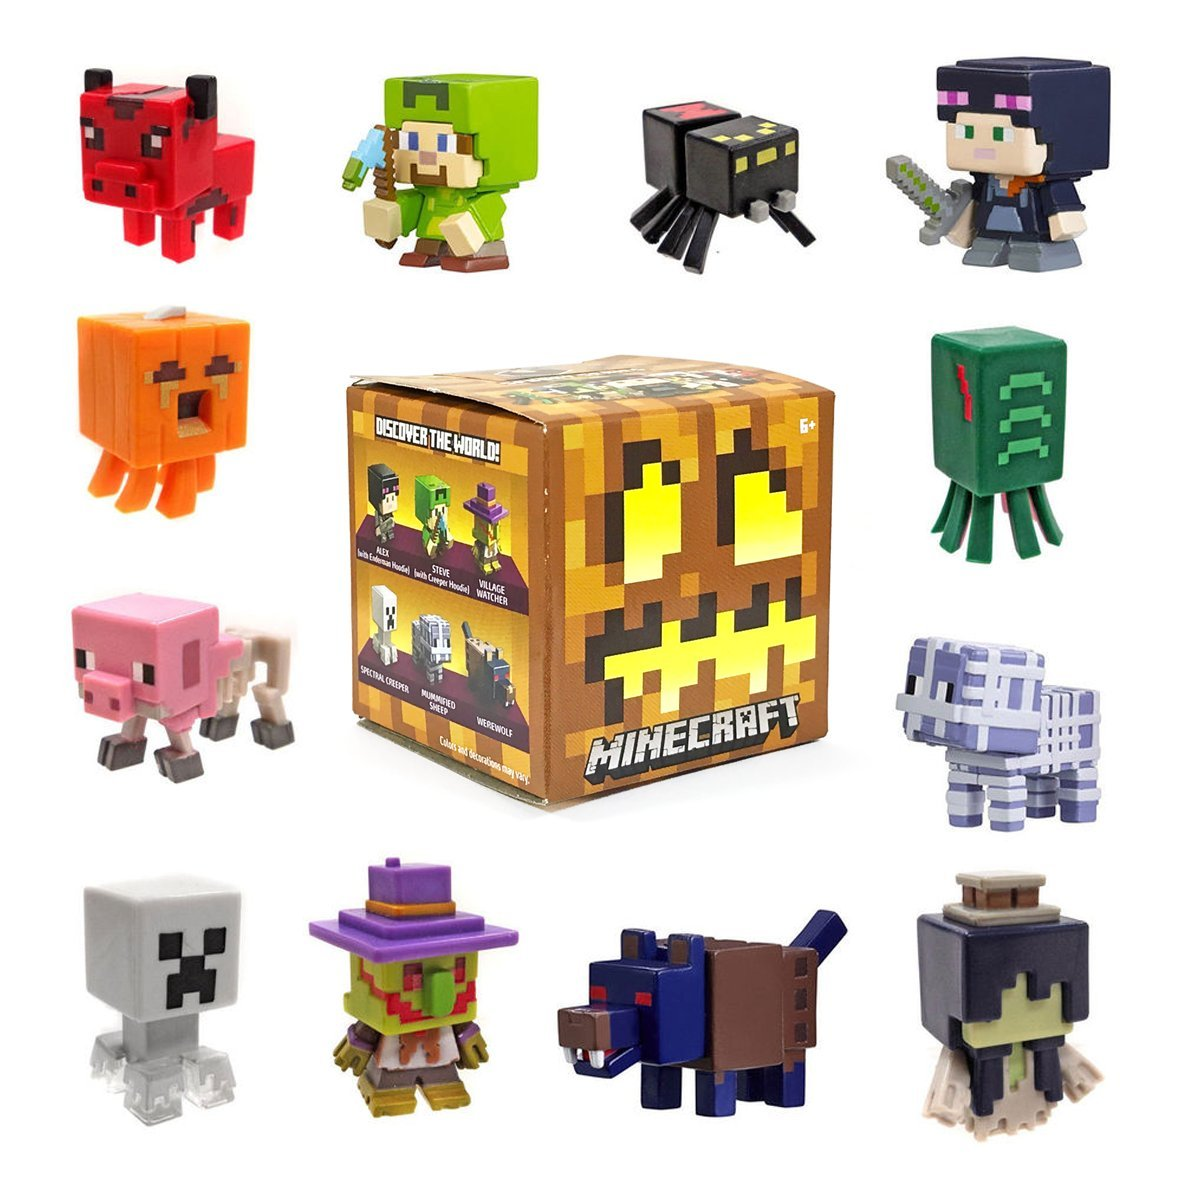 Minecraft End Stone Series 6 Mini Figure Mystery Pack: Amazon.es: Juguetes y juegos